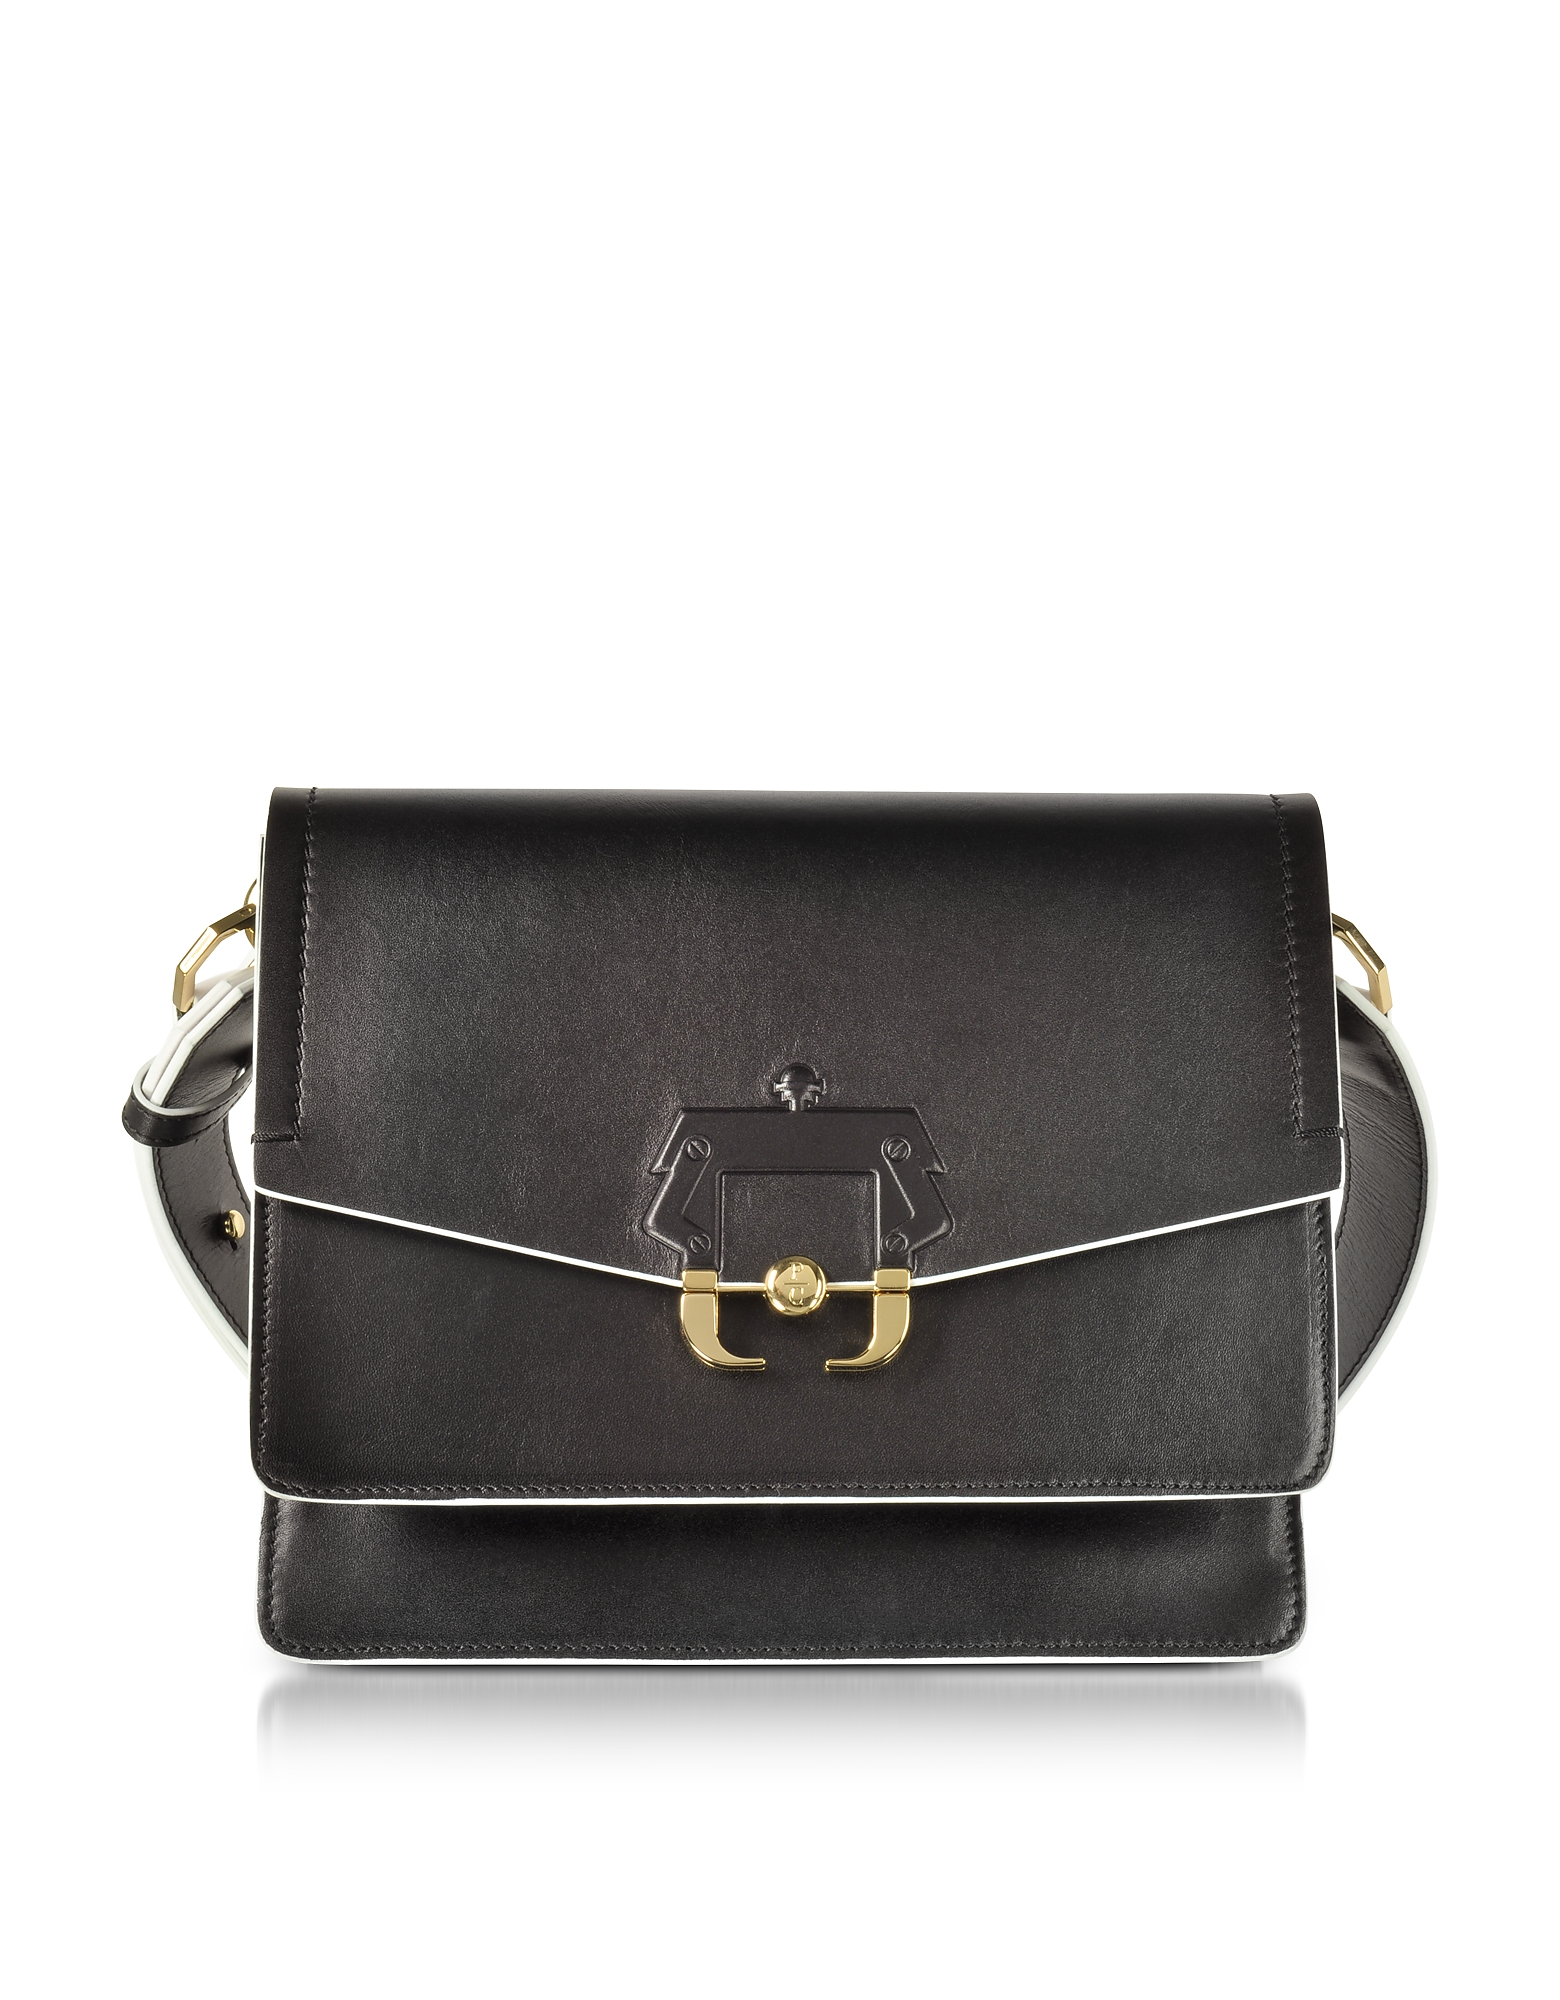 Paula Cademartori Handbags, Black Leather Twiggy Shoulder Bag